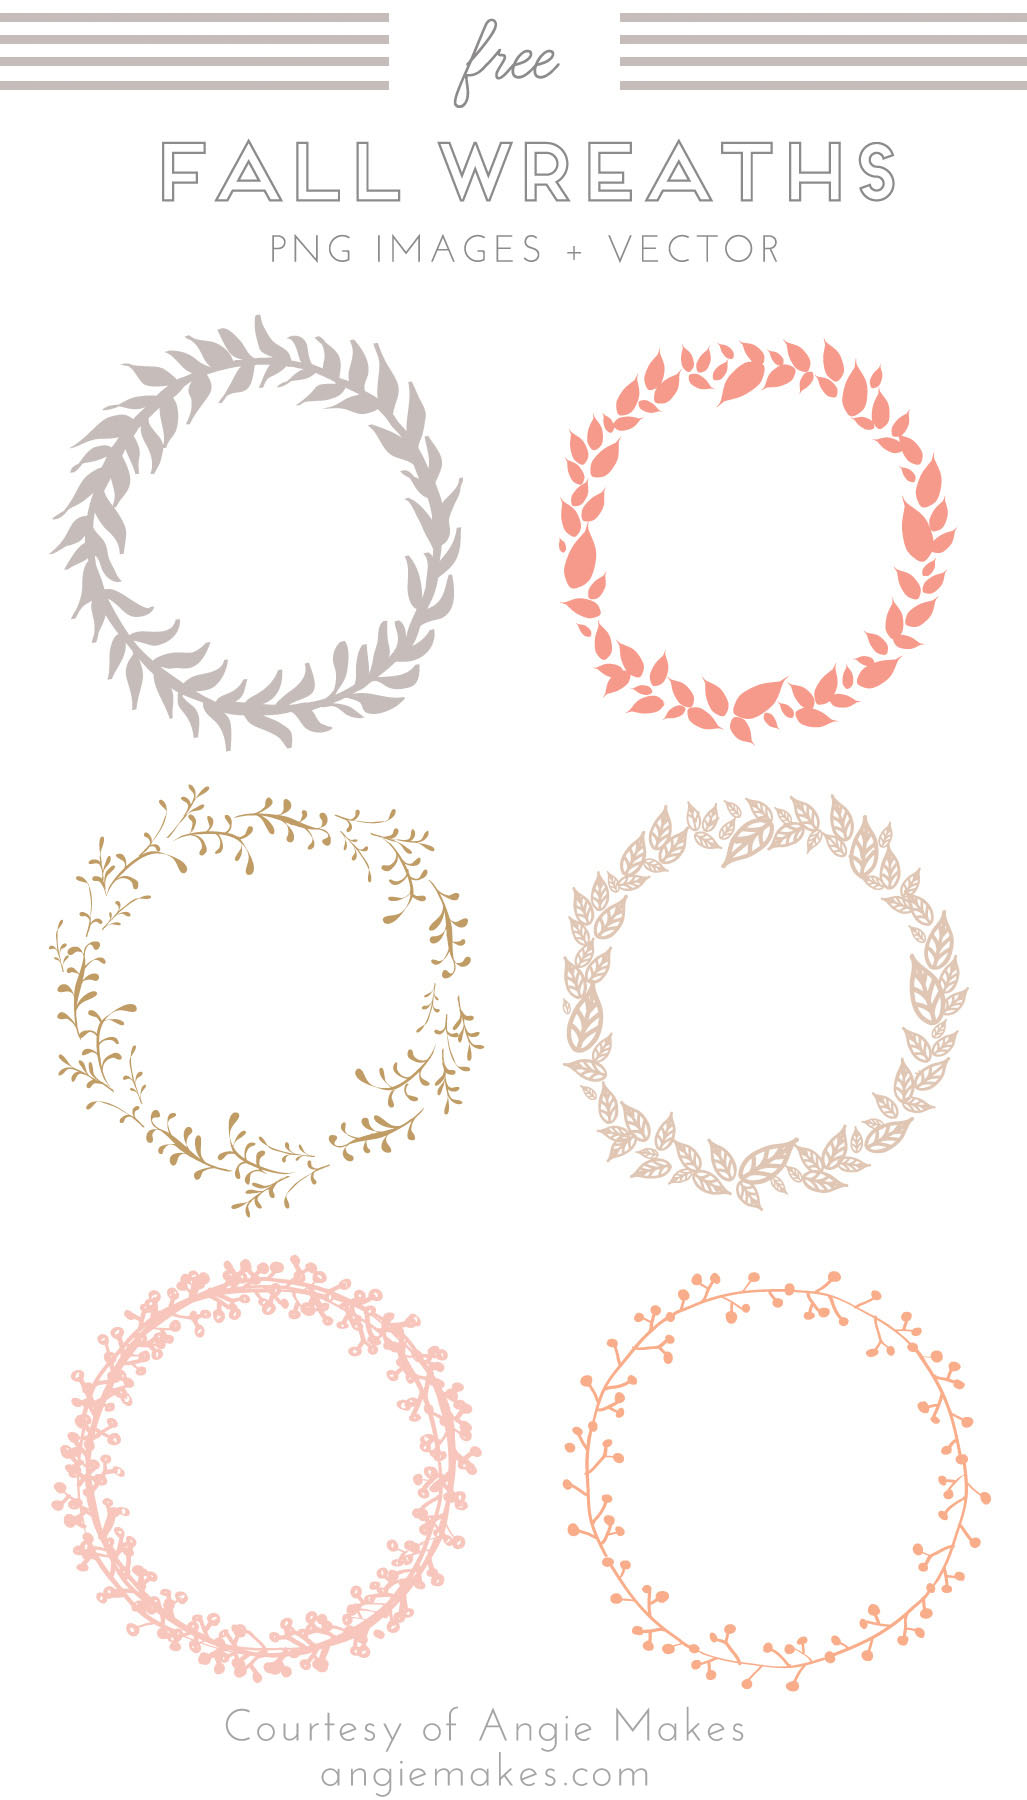 Watercolor lemon wreath free clipart png image library stock Cotton boll wreath png free clipart - ClipartFest image library stock